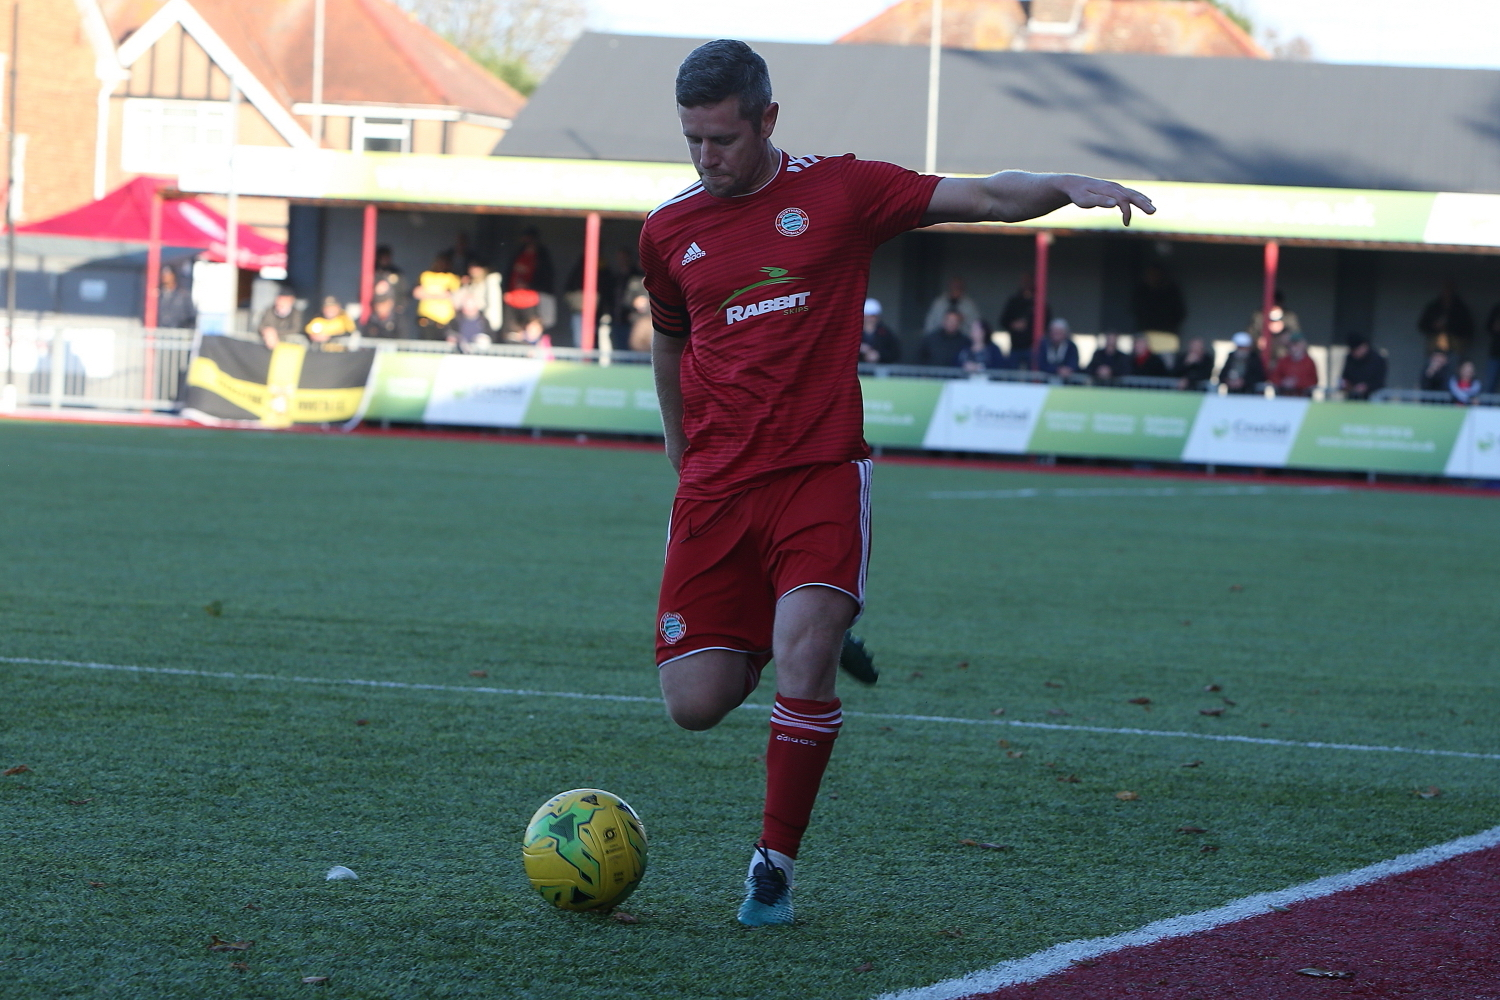 Read the full article - 'Huge' run could determine Worthing's promotion chances